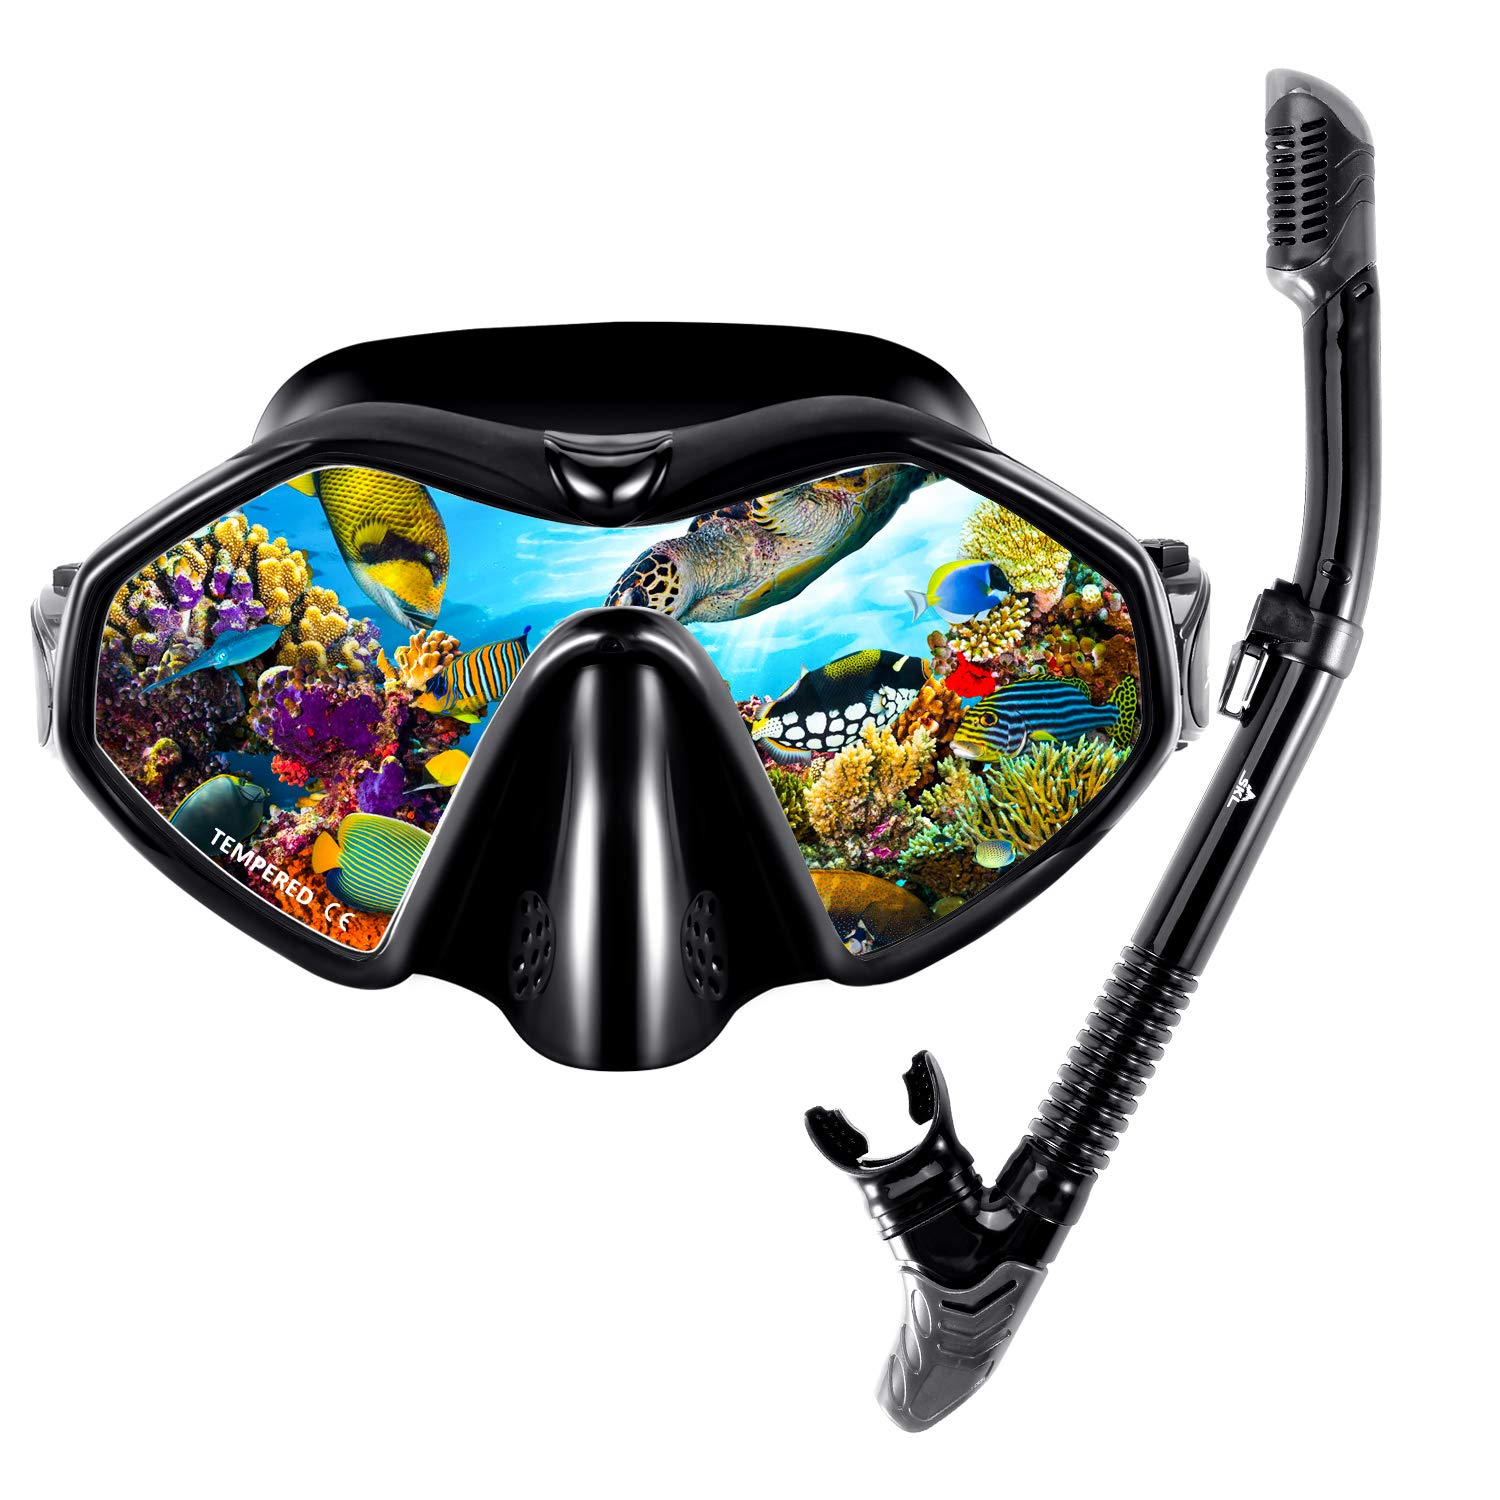 Premium Snorkel Set for Adult Anti Fog Diving Snorkel Mask with Panoramic Tempered Glass, Free Breathing Anti-Leak Dry Top Snorkel by SKL